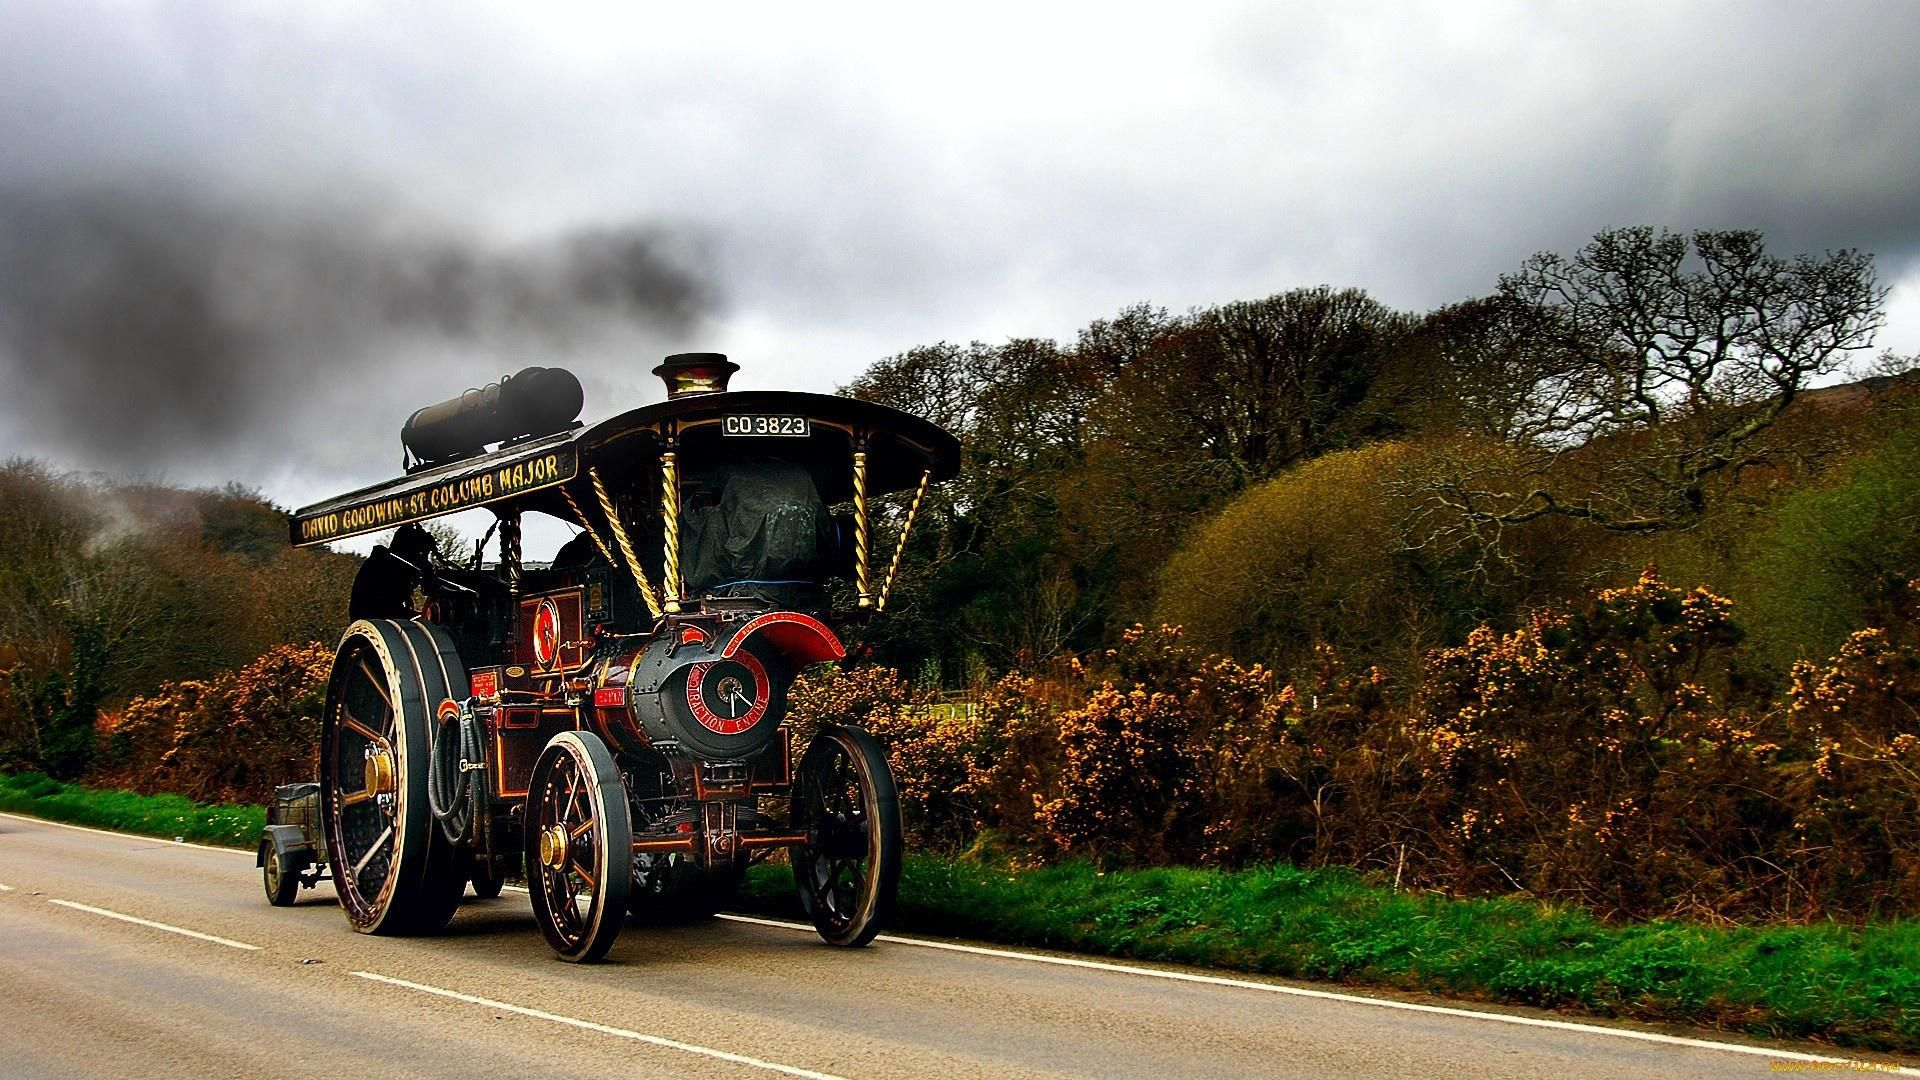 Tractor Wallpaper Oldtimer old tractor vehicle HD Wallpaper 1920x1080